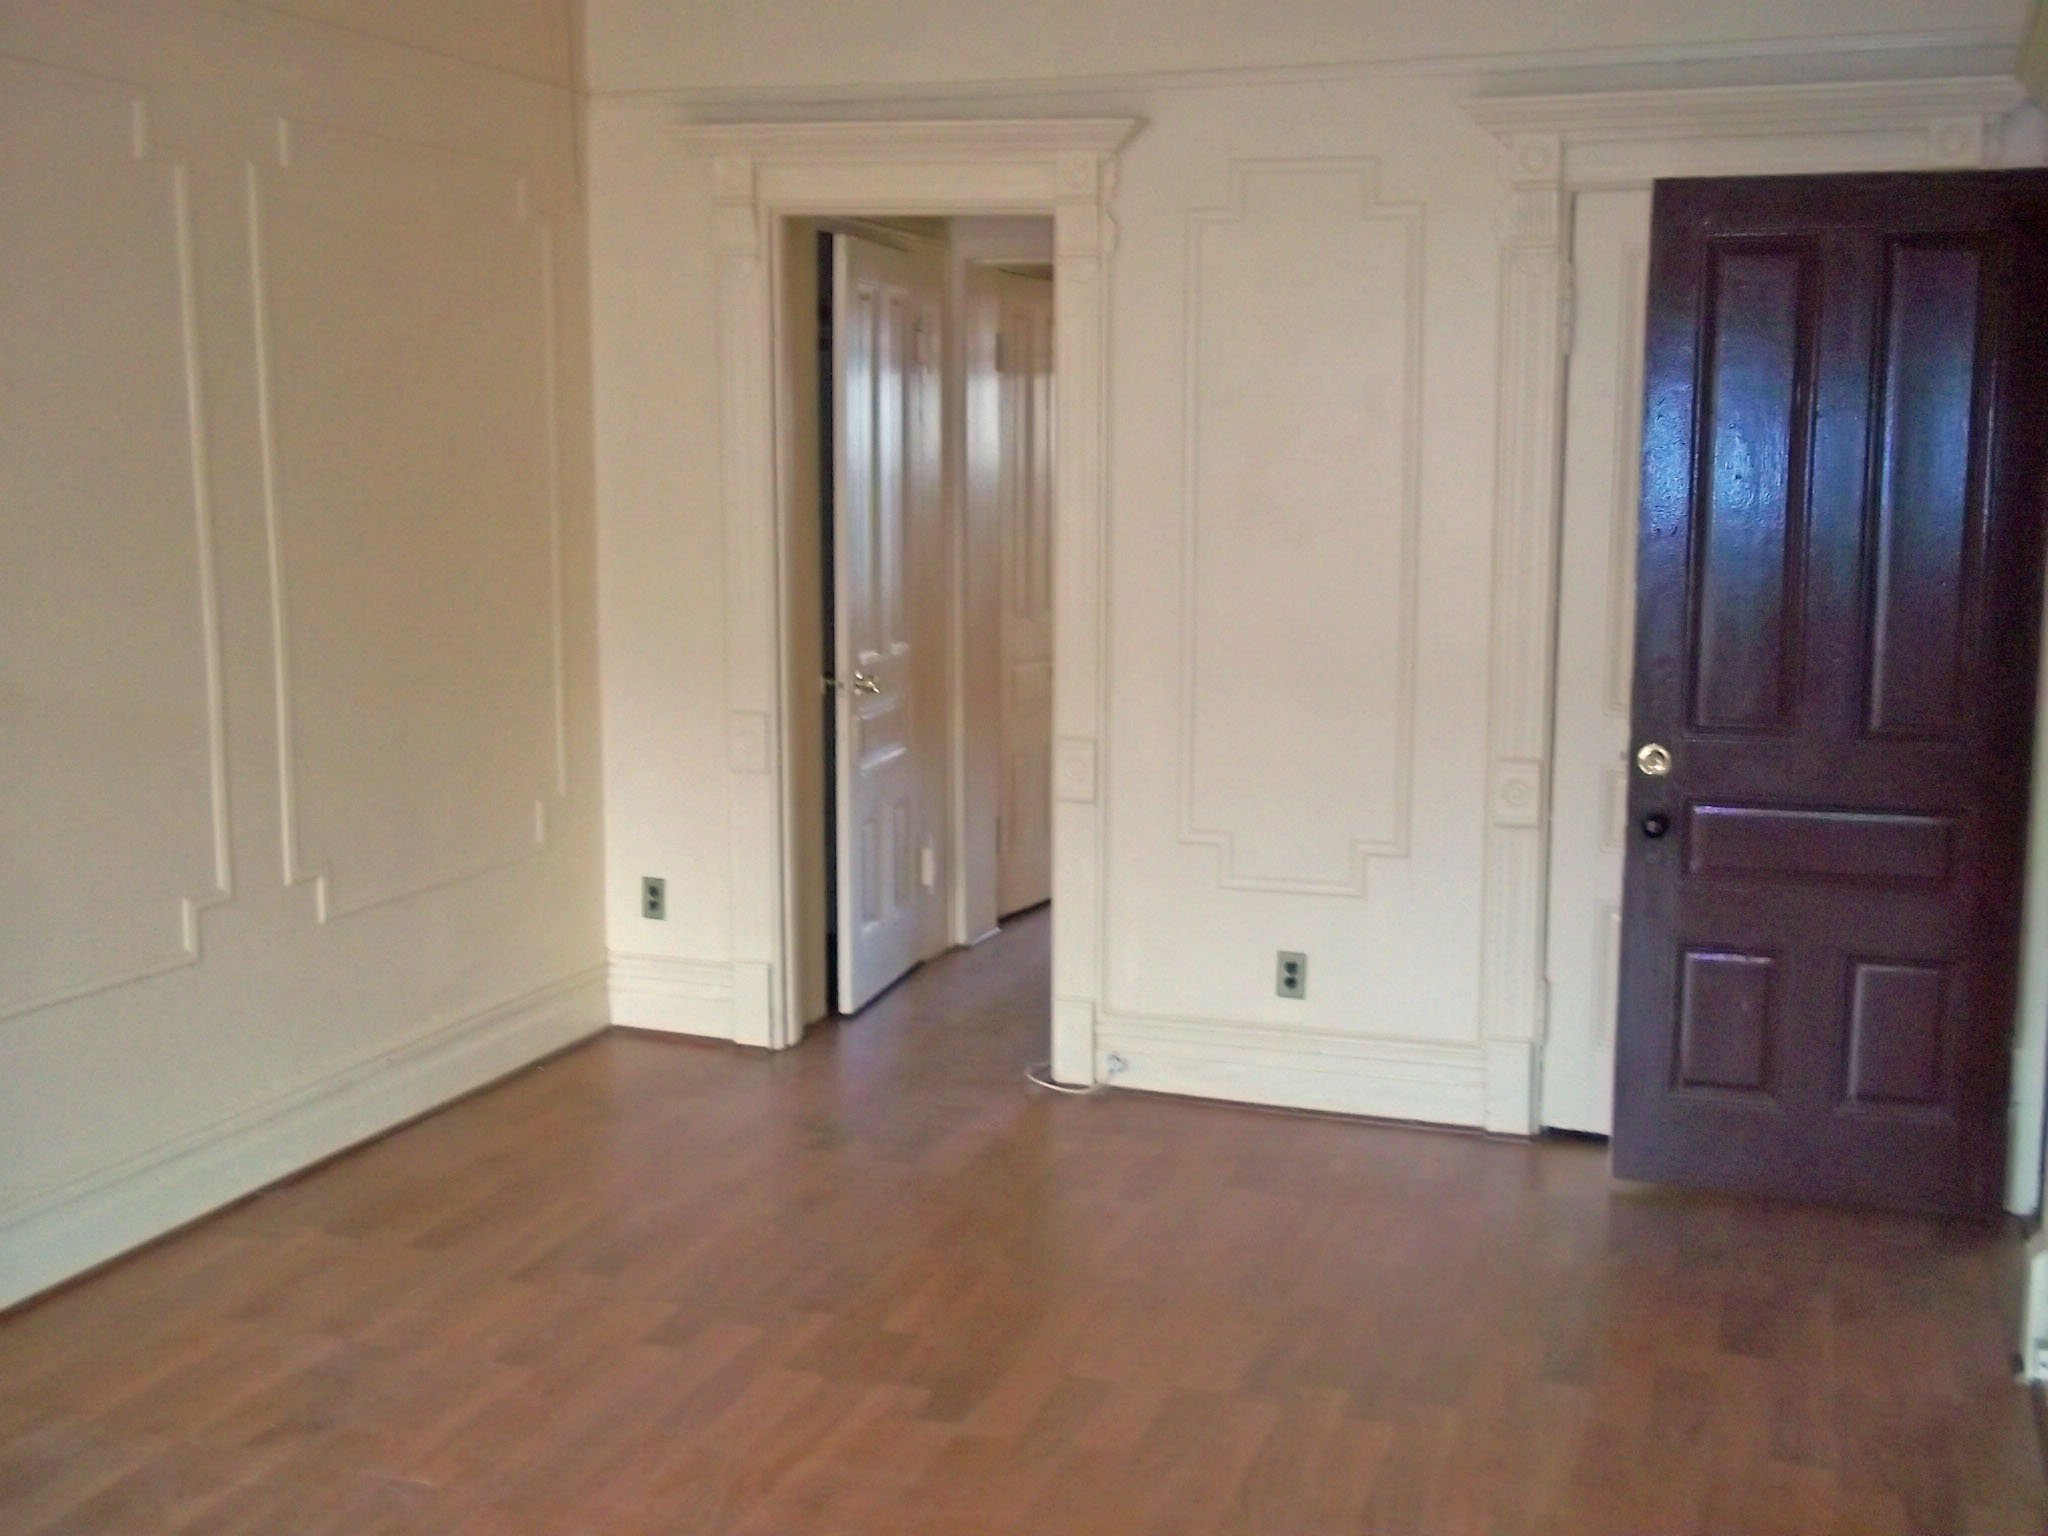 Bedford stuyvesant 1 bedroom apartment for rent brooklyn crg3107 for One bedroom for rent in brooklyn